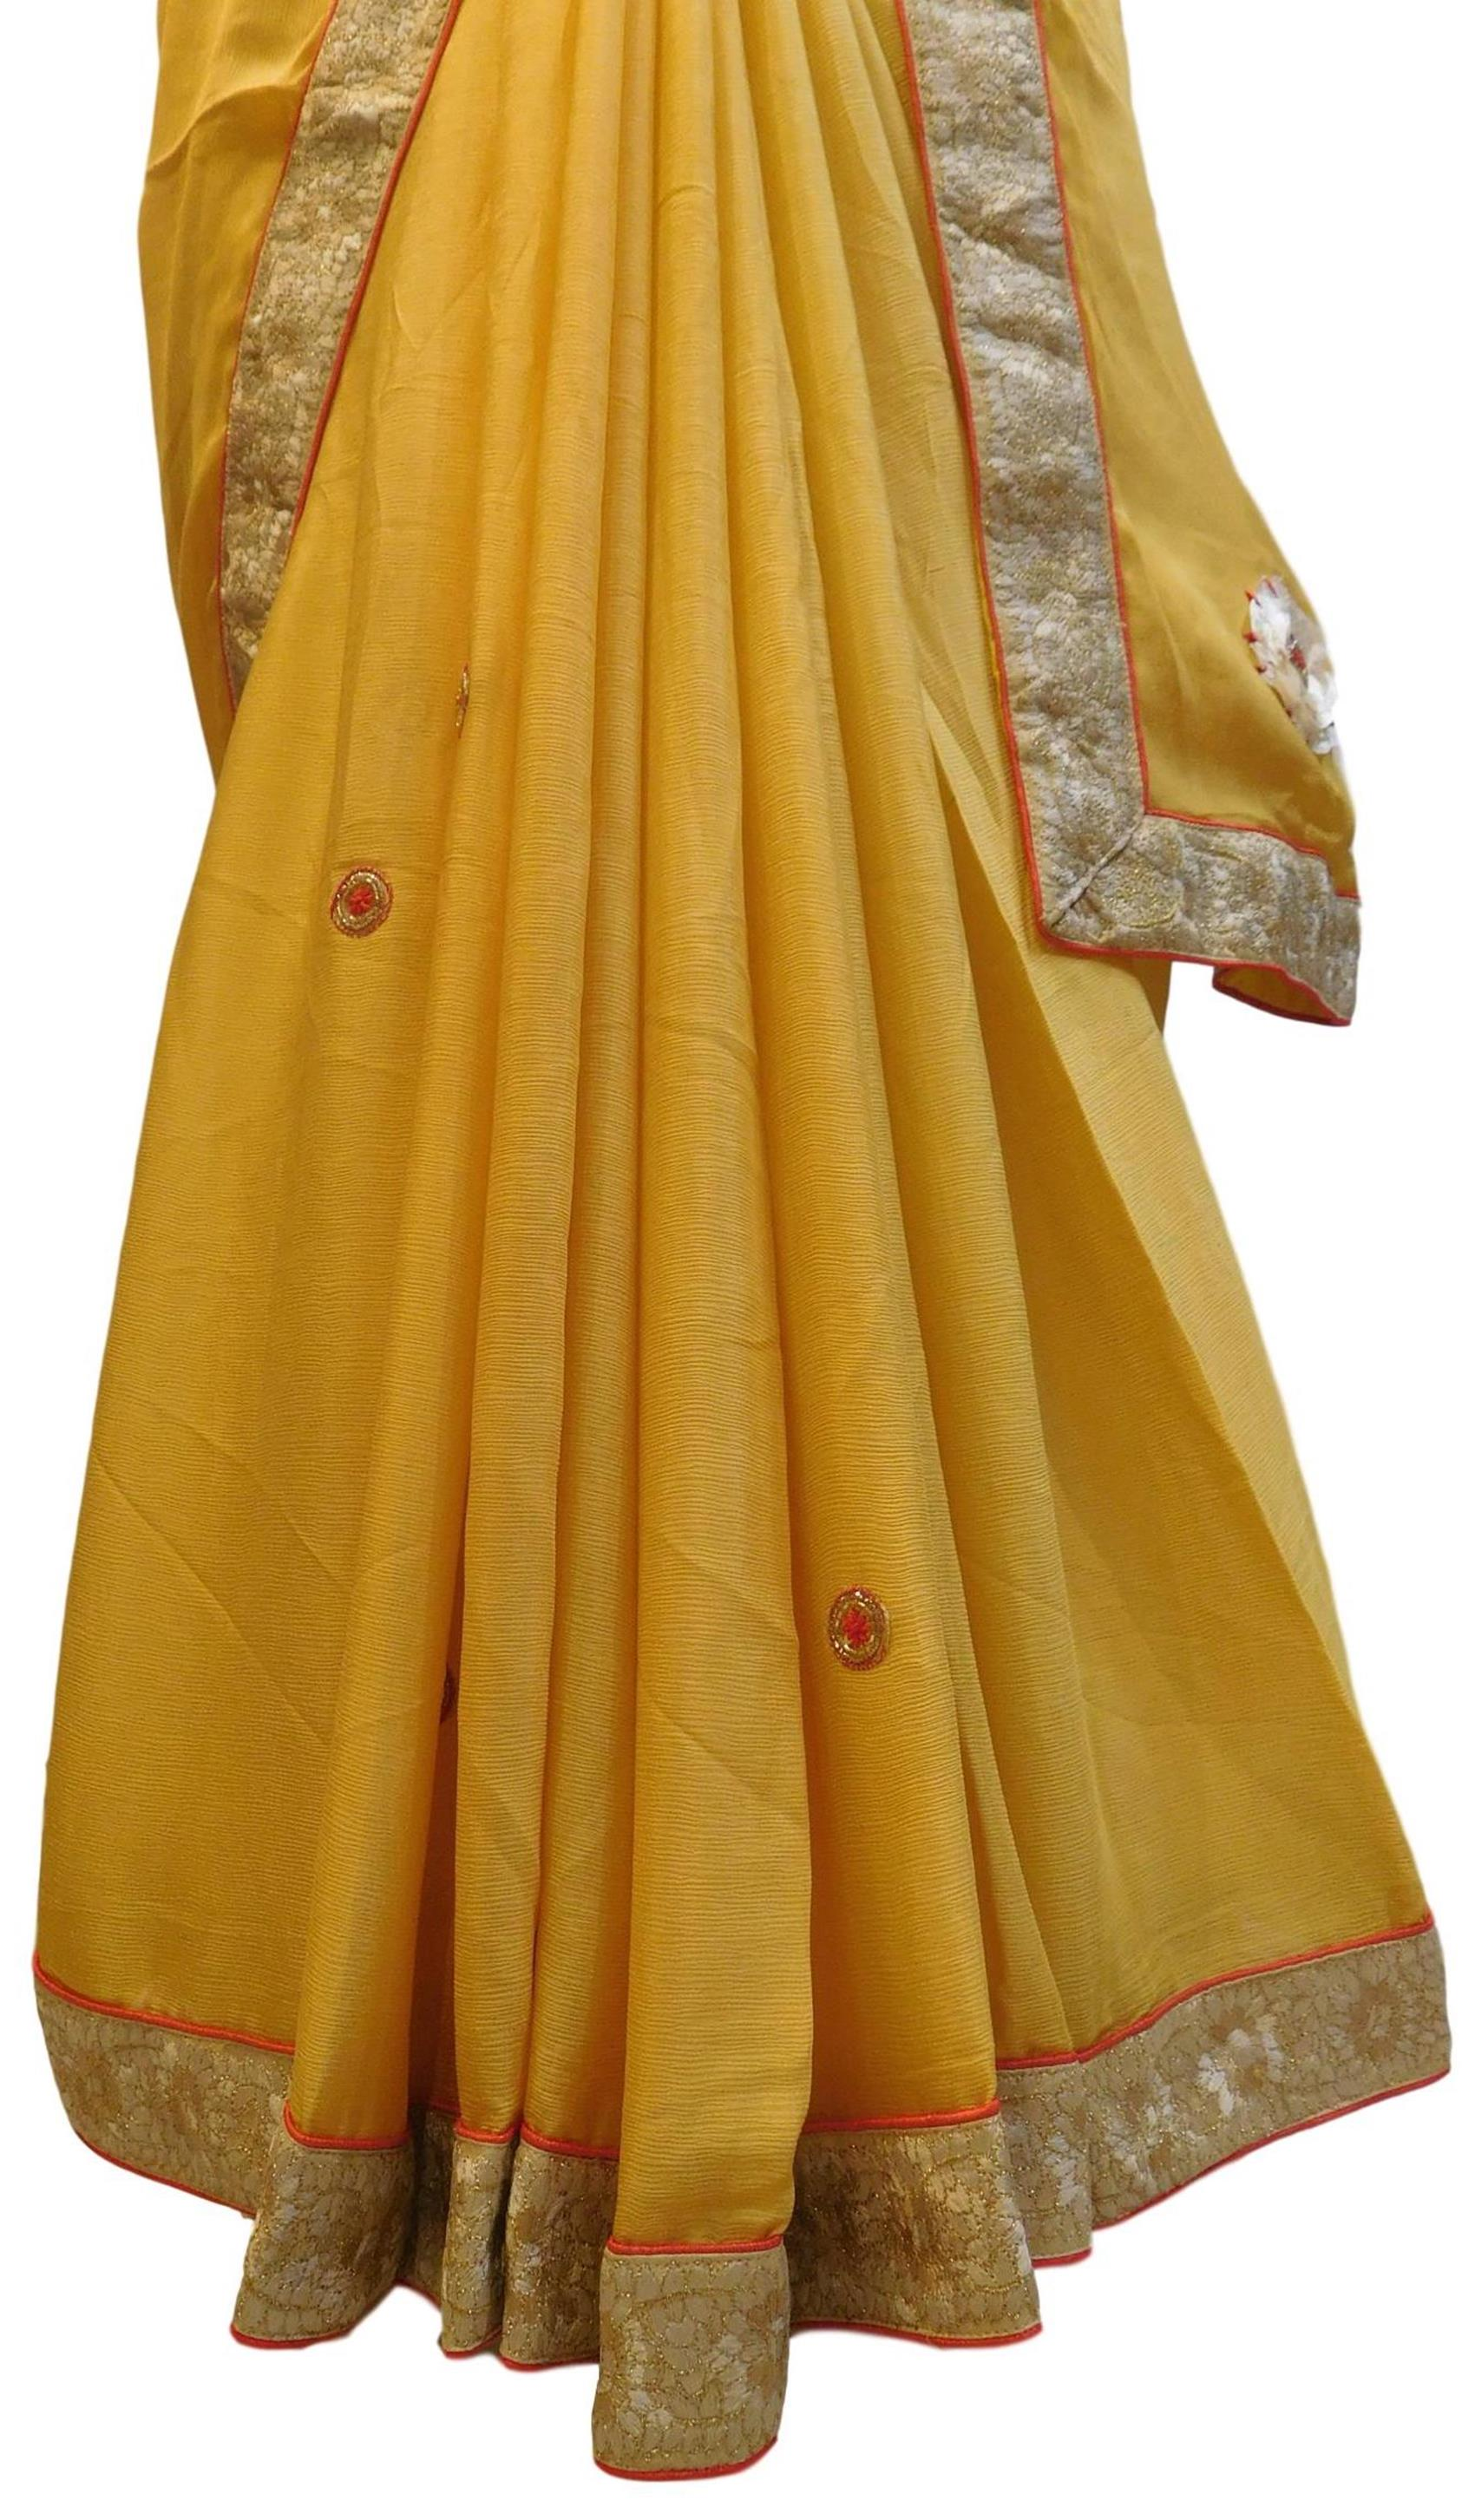 Yellow Designer PartyWear Bridal Crepe (Chinon) Beads Zari Thread Stone Pearl Hand Embroidery Work Wedding Saree Sari E377